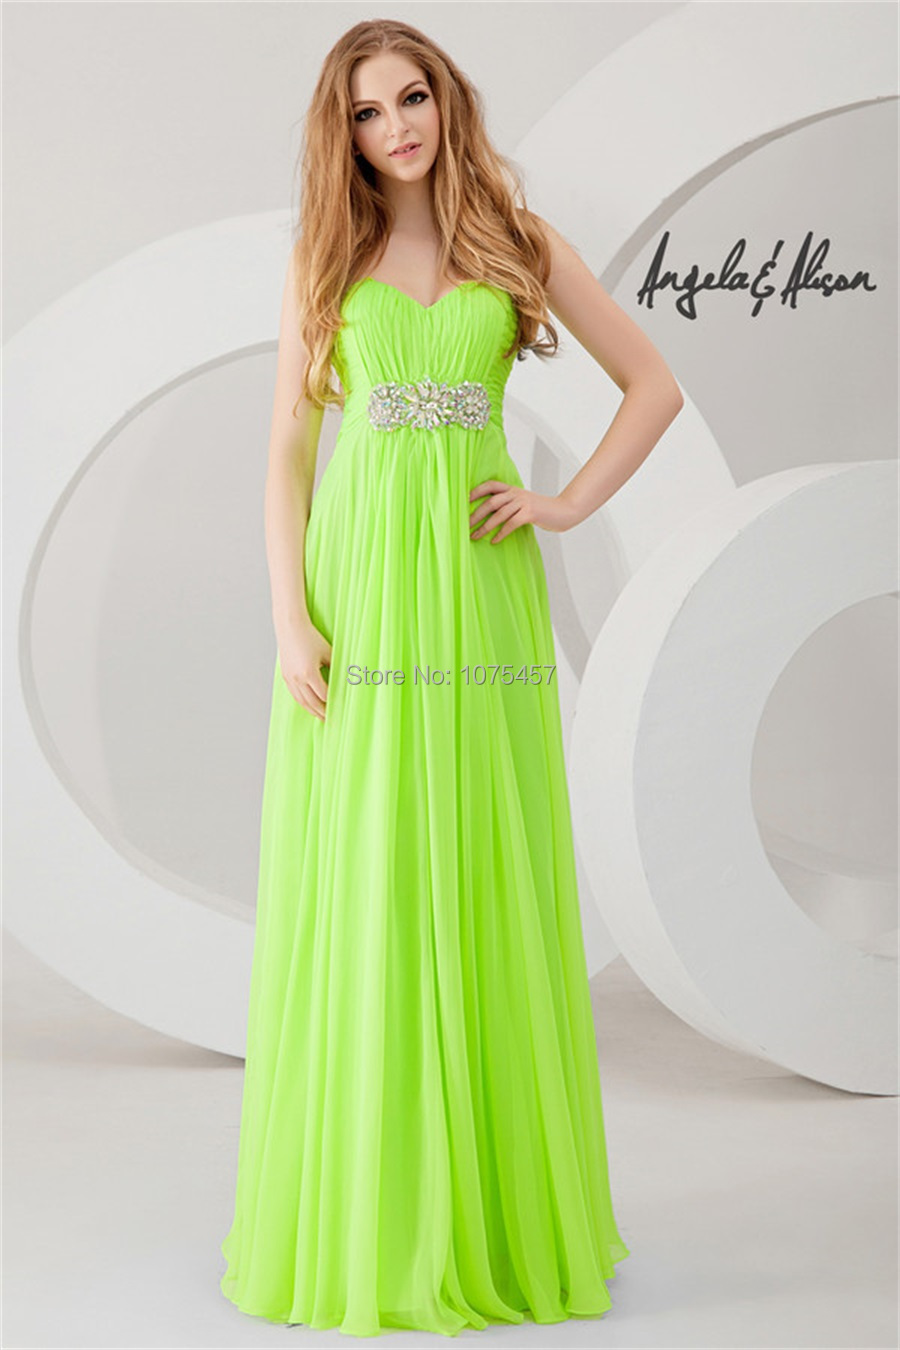 Popular Lime Prom Dress-Buy Cheap Lime Prom Dress lots from China ...